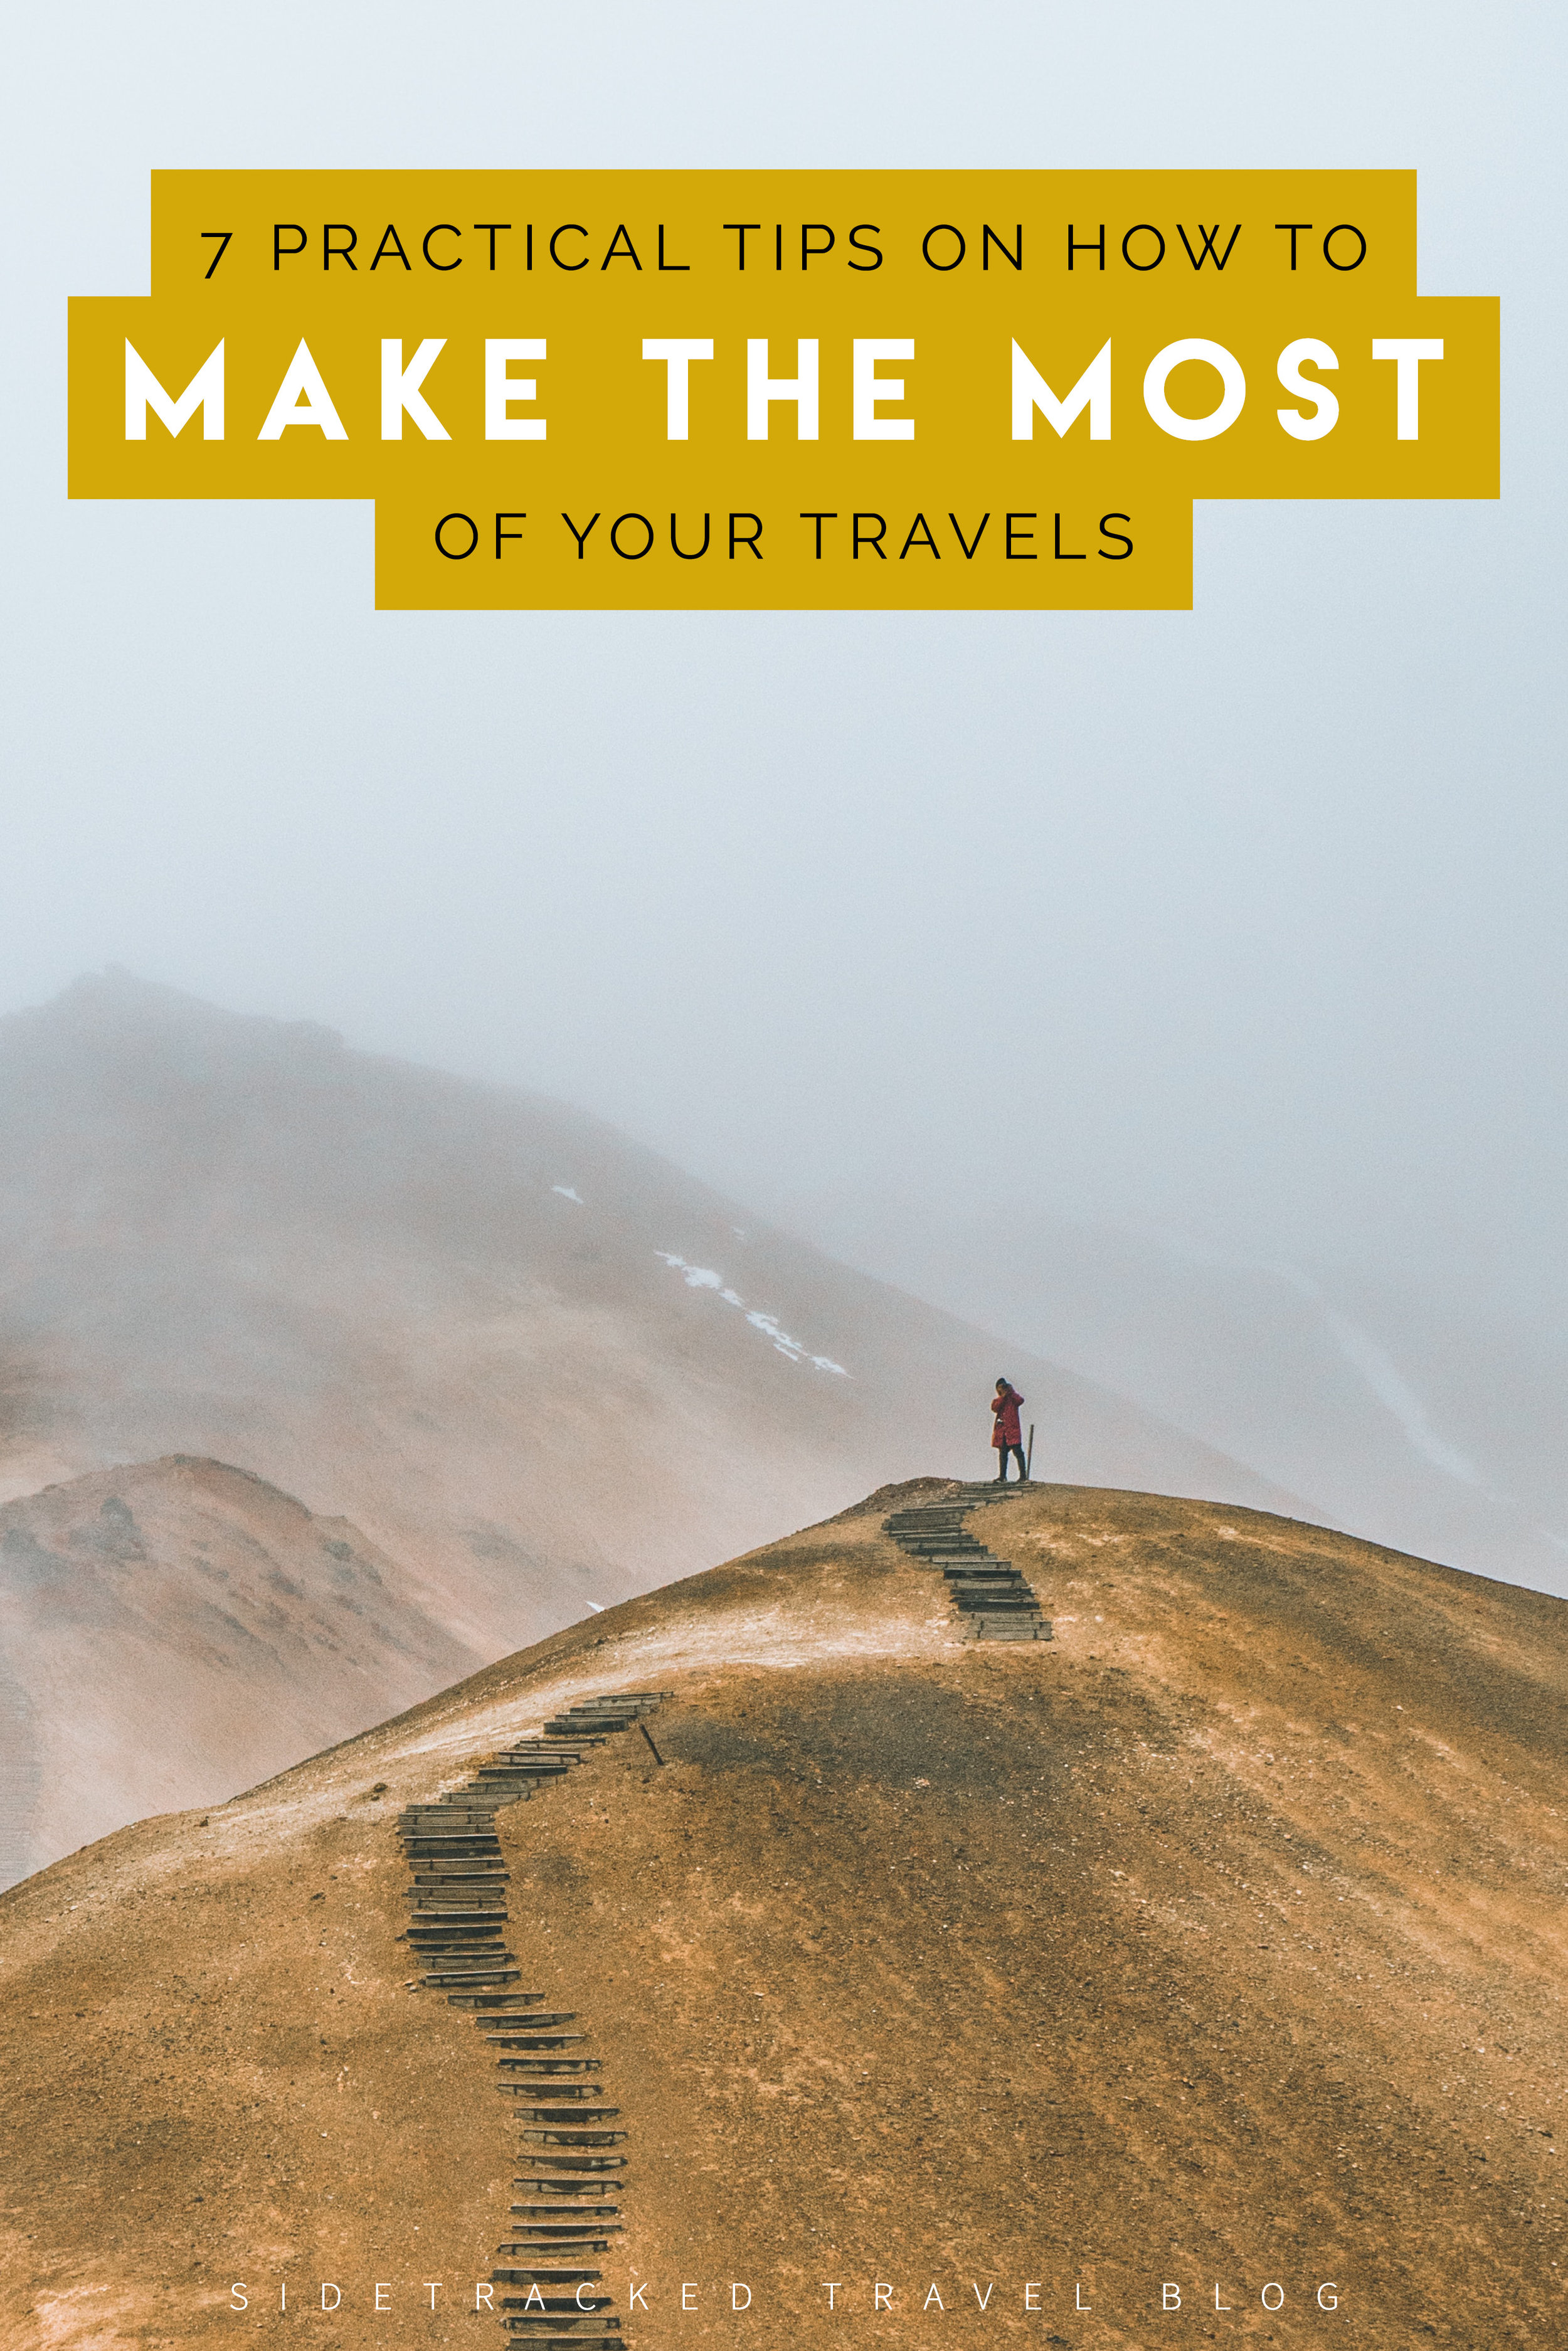 With an abundance of must-see lists, reviews, and tour possibilities, traveling these days can sometimes feel pretty stressful and overwhelming. But it doesn't have to be. In this article I've put together seven practical travel tips to help you make the most of your travels (plus the majority of the points are easy and free!).